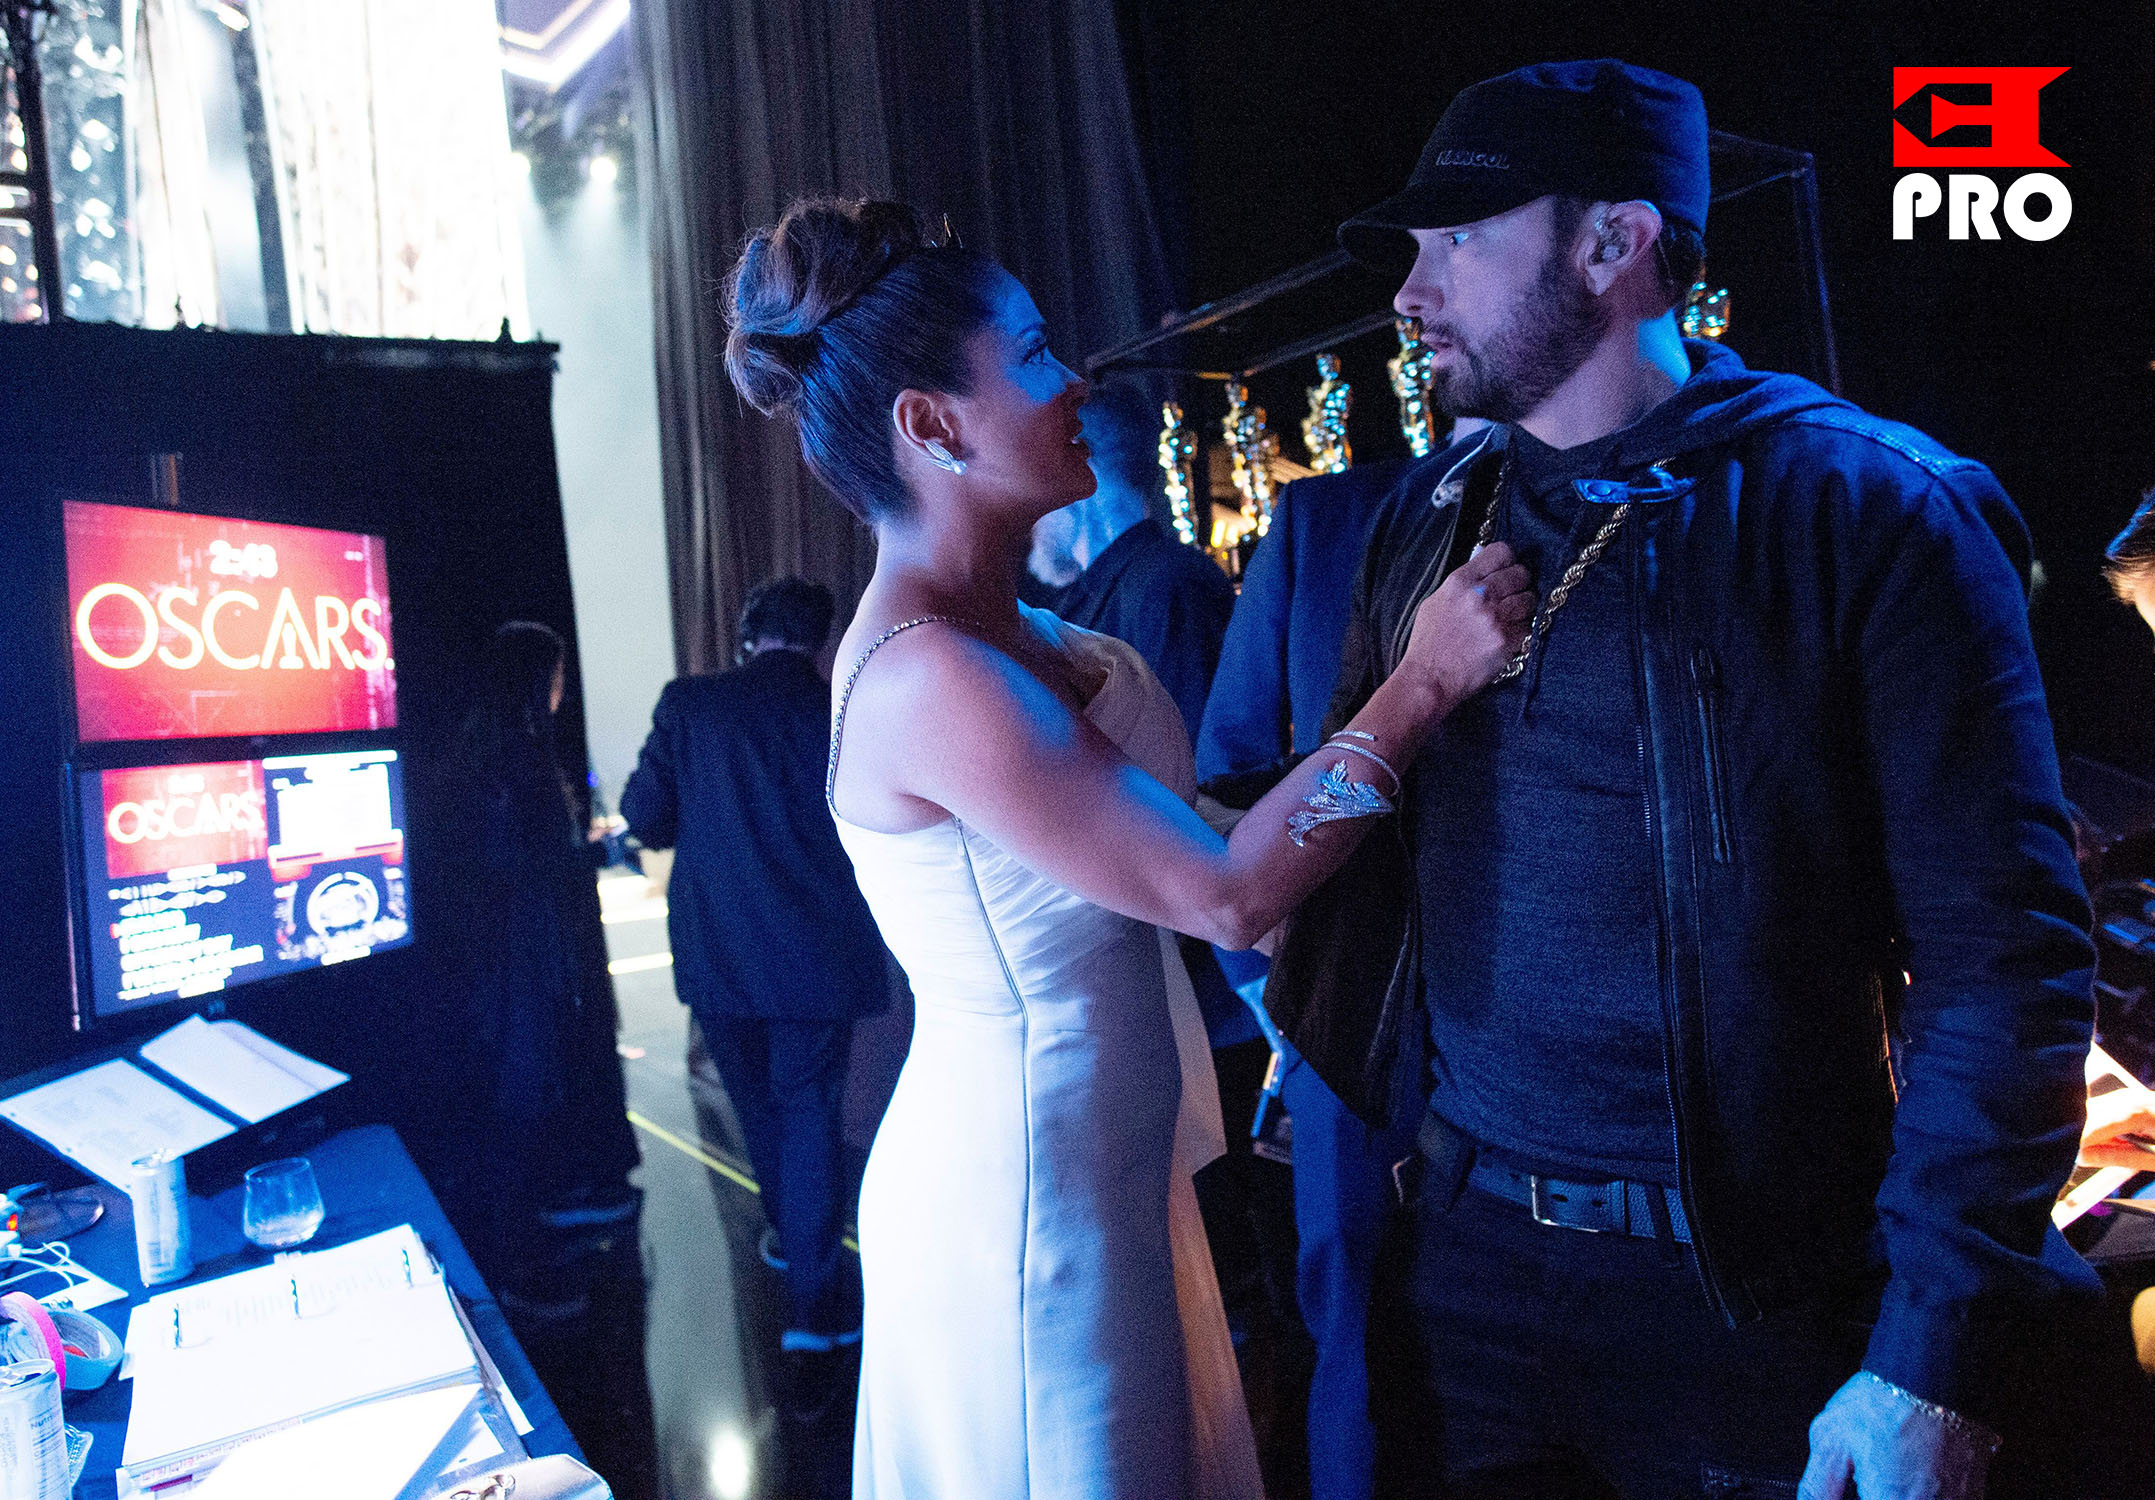 Eminem and Salma Hayek 92nd Annual Academy Awards, Backstage, Los Angeles, USA - 09 Feb 2020